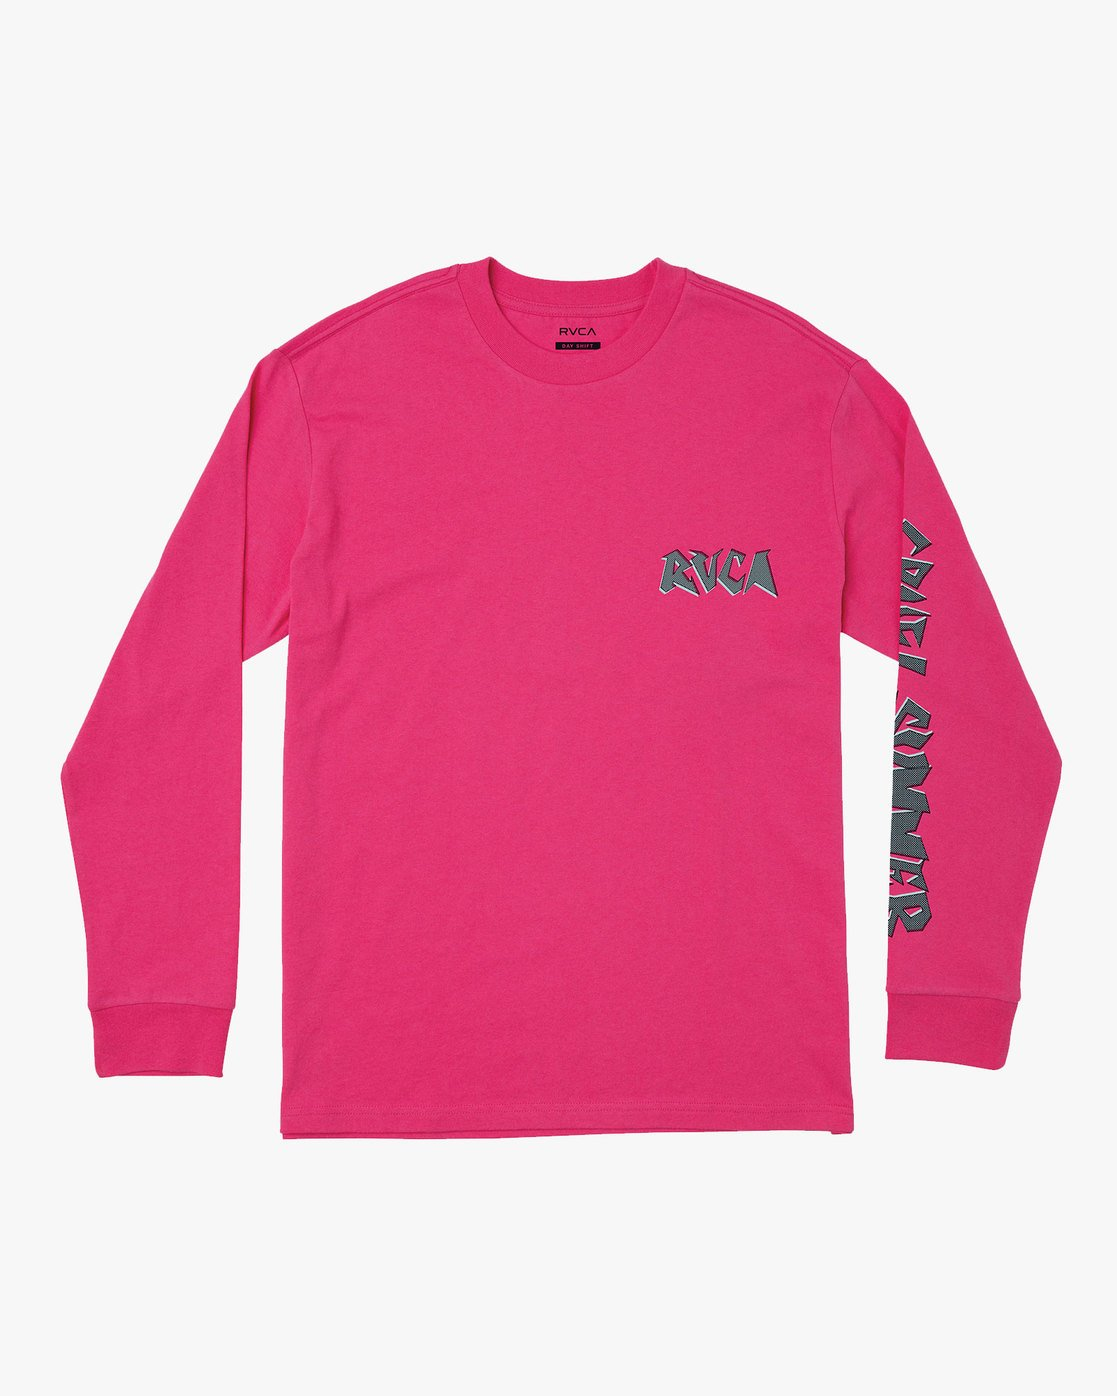 0 CRUEL SUMMER LONG SLEEVE T-SHIRT Pink M4921RCR RVCA